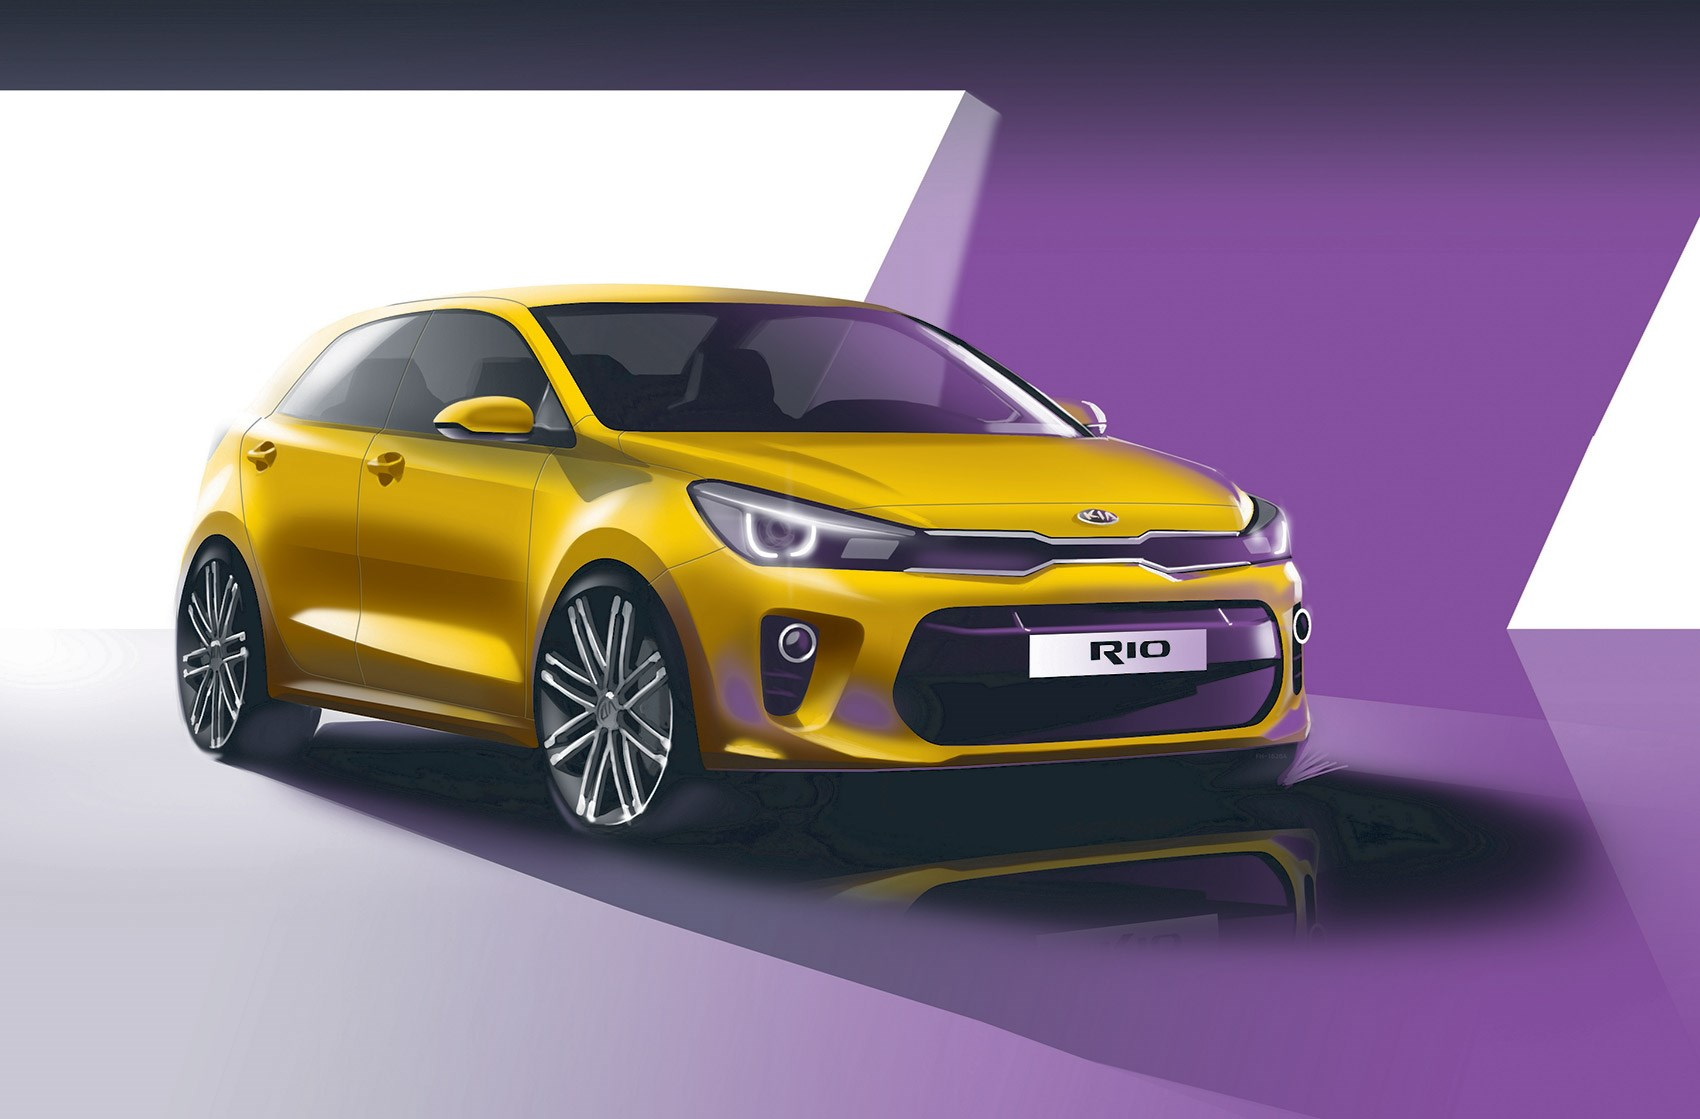 new kia rio revealed latest on kia s upcoming fiesta rival by car magazine. Black Bedroom Furniture Sets. Home Design Ideas